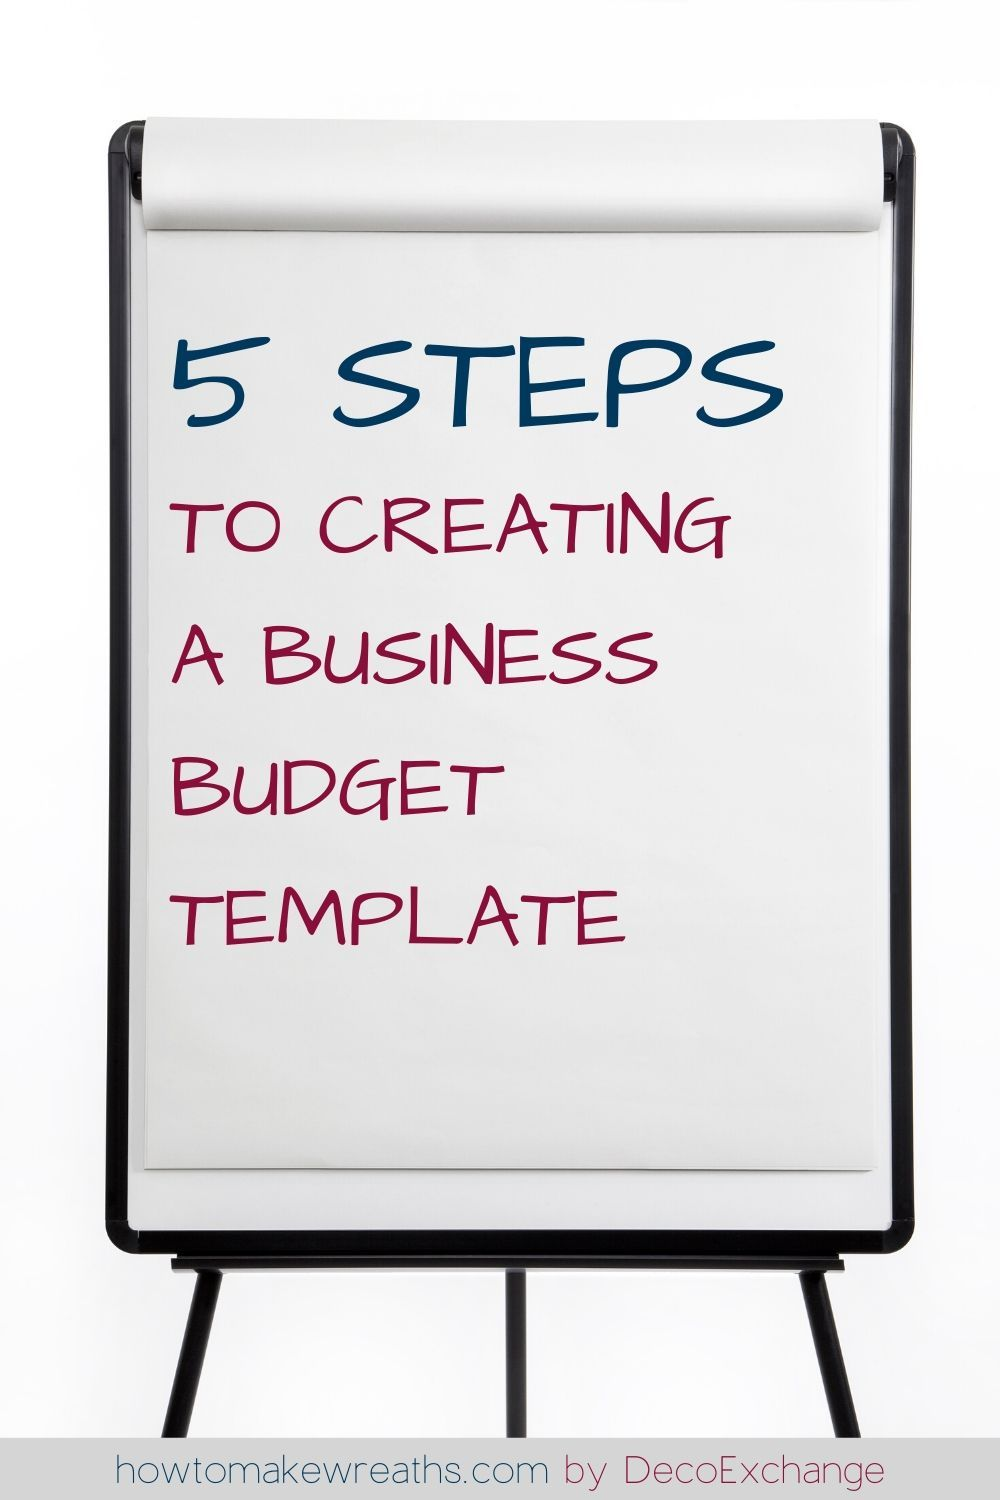 Business Budget Template 101 Creating Your Small Business Budget How To Make Wreaths Business Budget Template Budget Template Budgeting